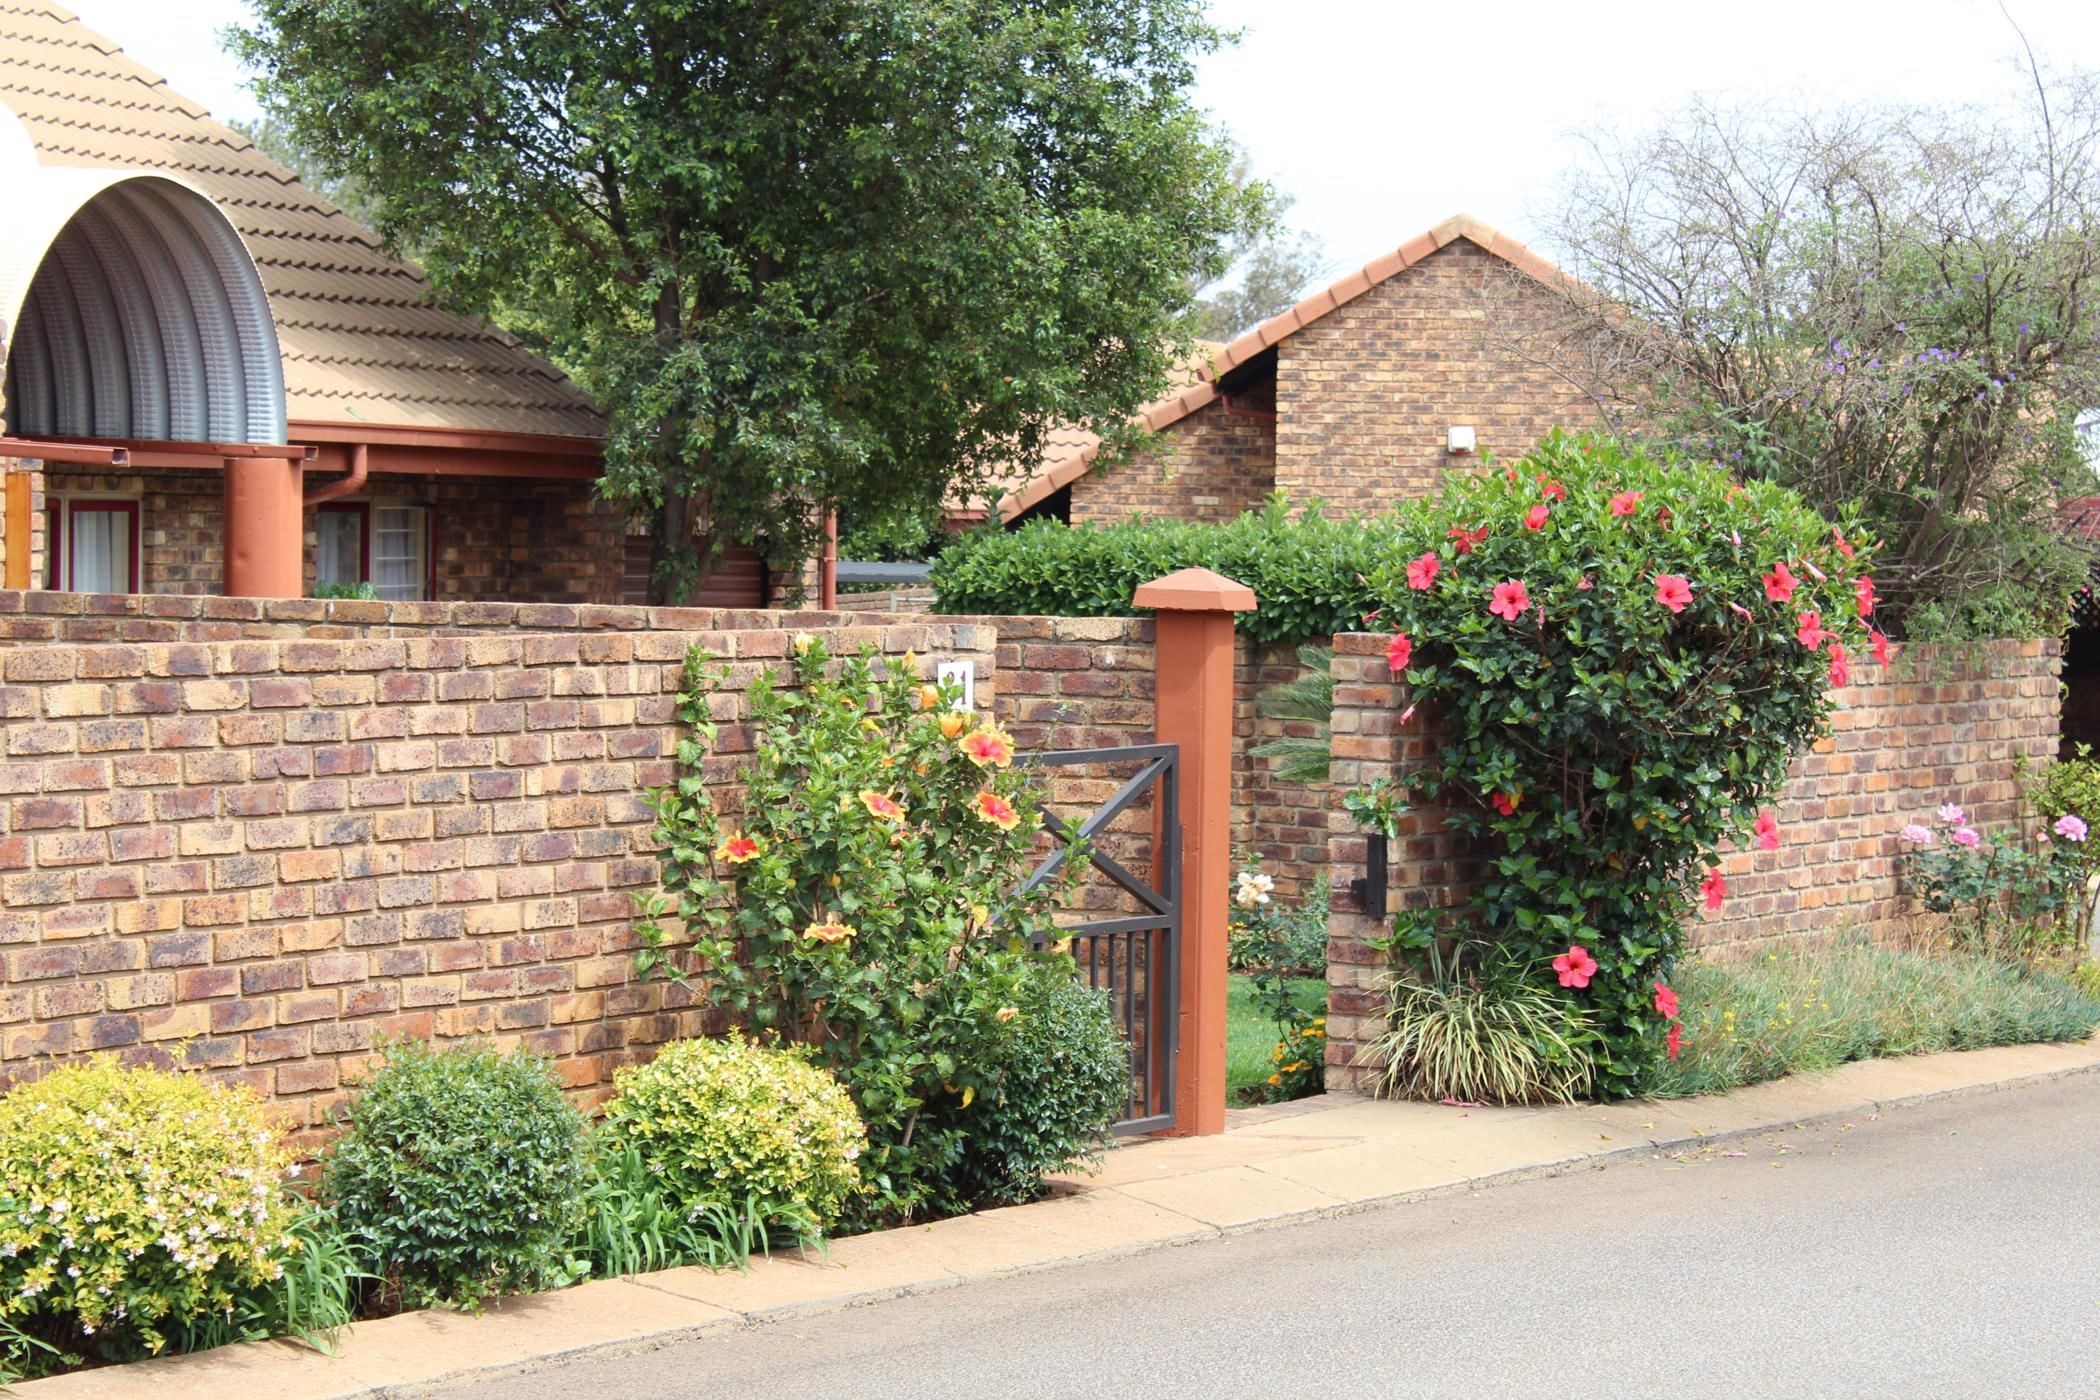 https://listing.pamgolding.co.za/images/properties/201910/844956/H/844956_H_40.jpg